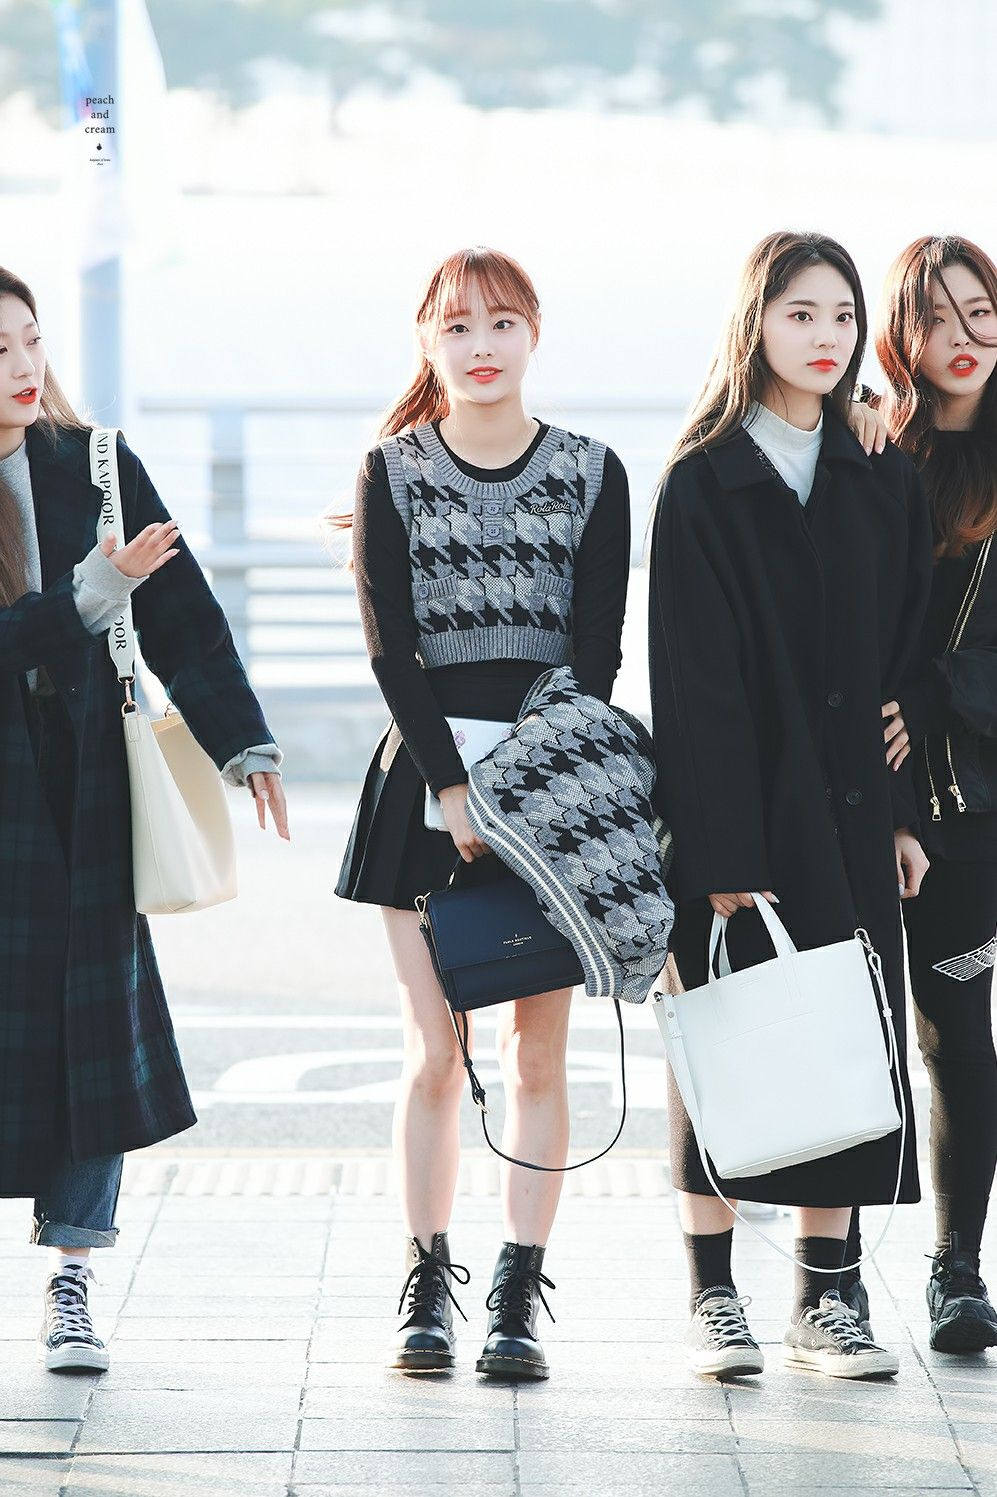 Loona Chuu 191124 Incheon Airport Vietnam Kpop Girls Kpop Outfits Fall Winter Outfits